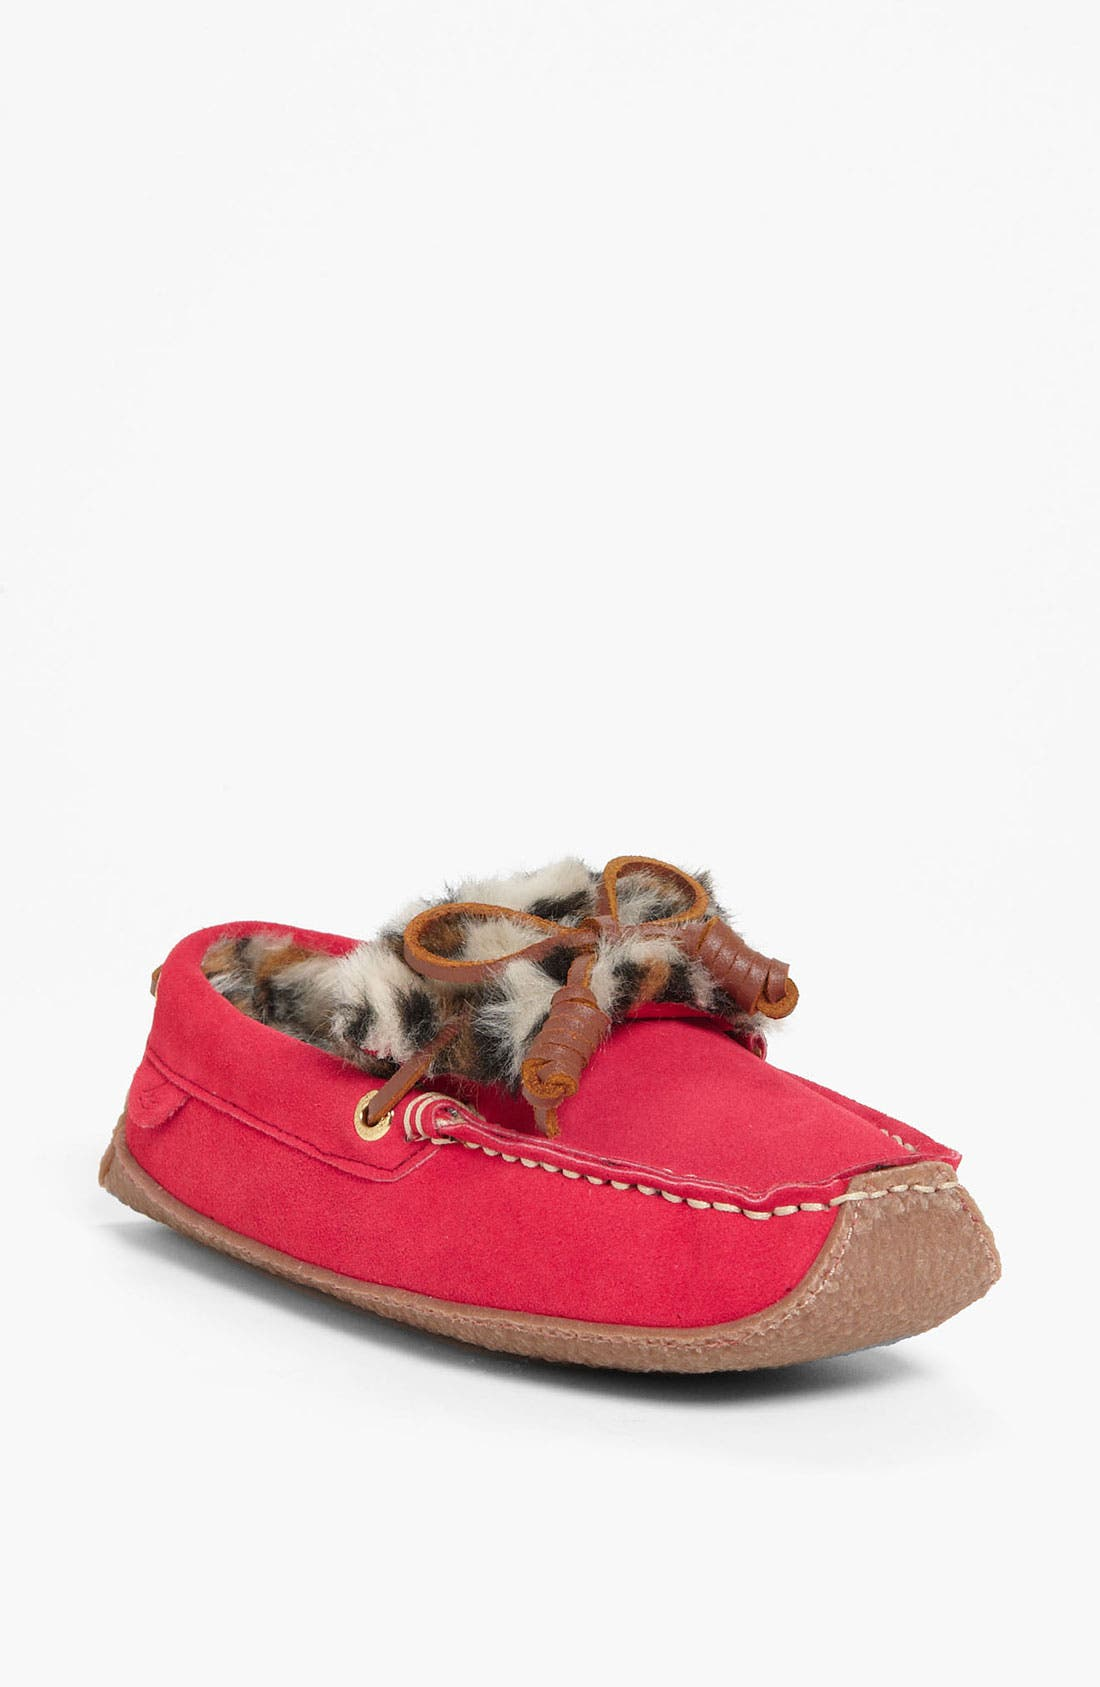 Alternate Image 1 Selected - SPERRY VIOLET MOCCASIN SLIPPER